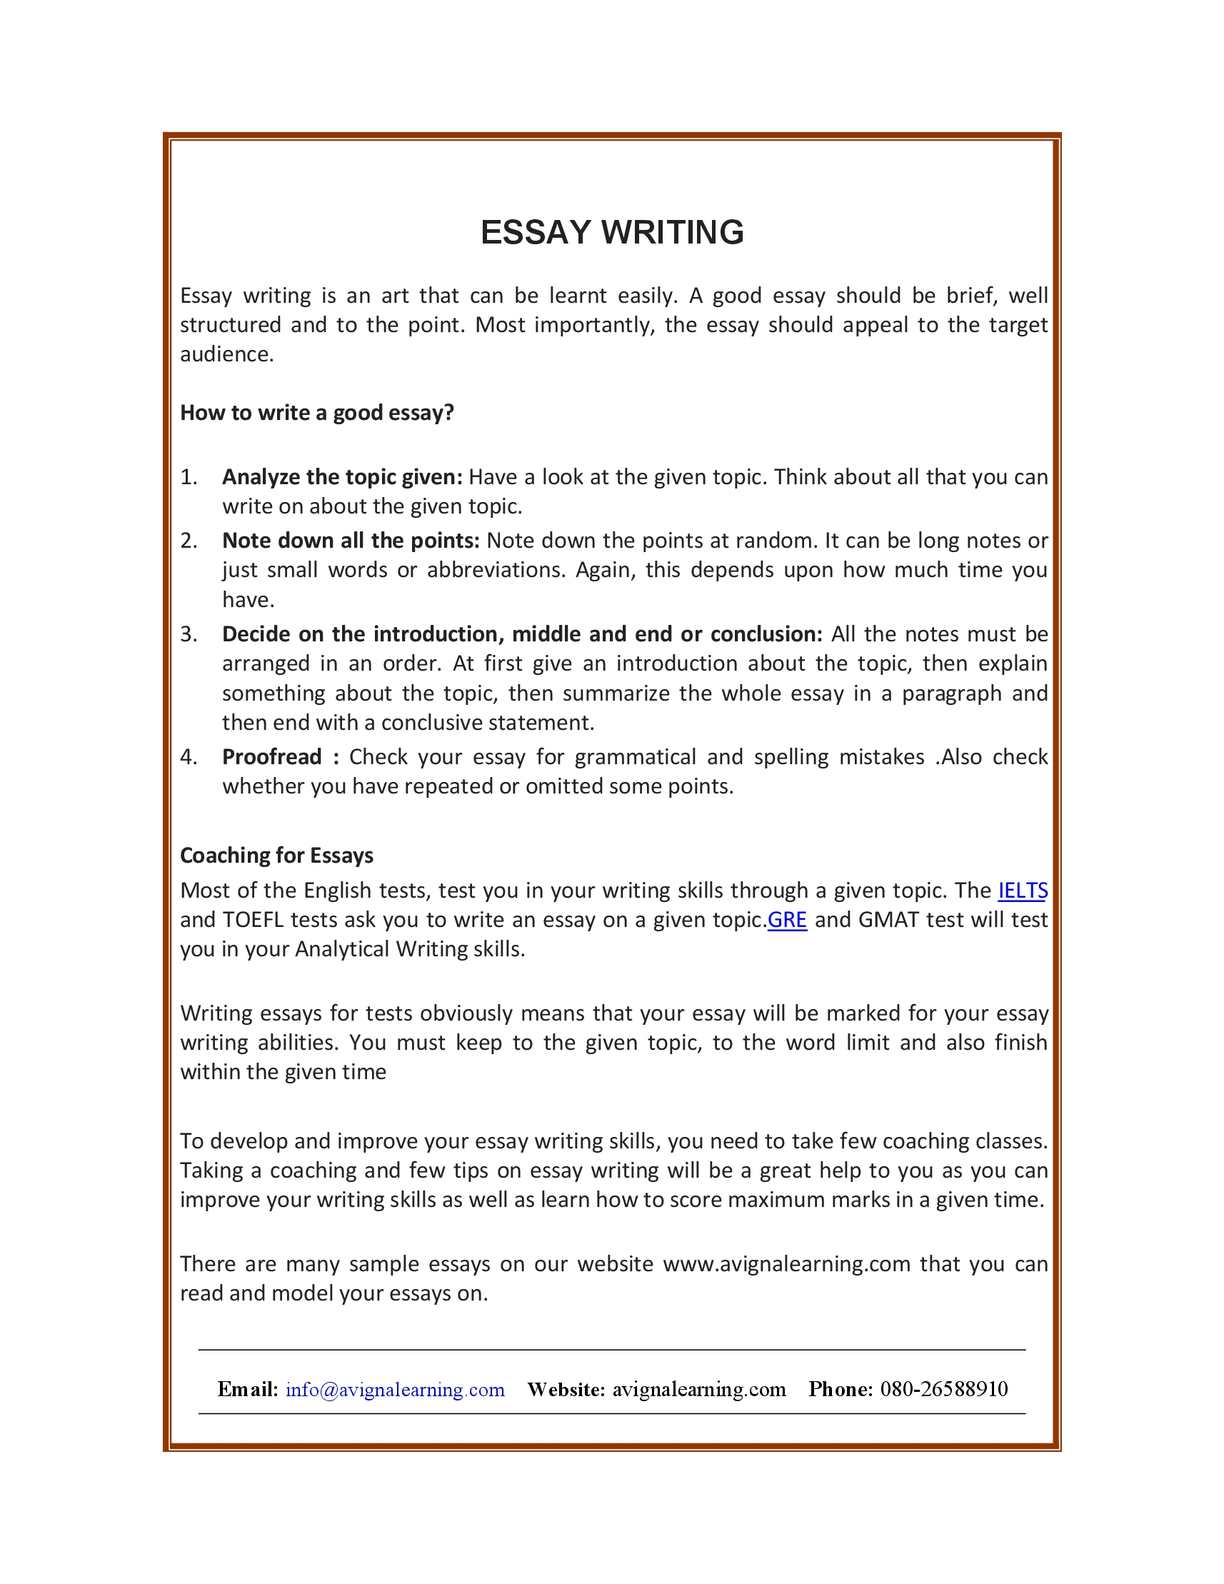 Jib fowles 15 basic appeals essay